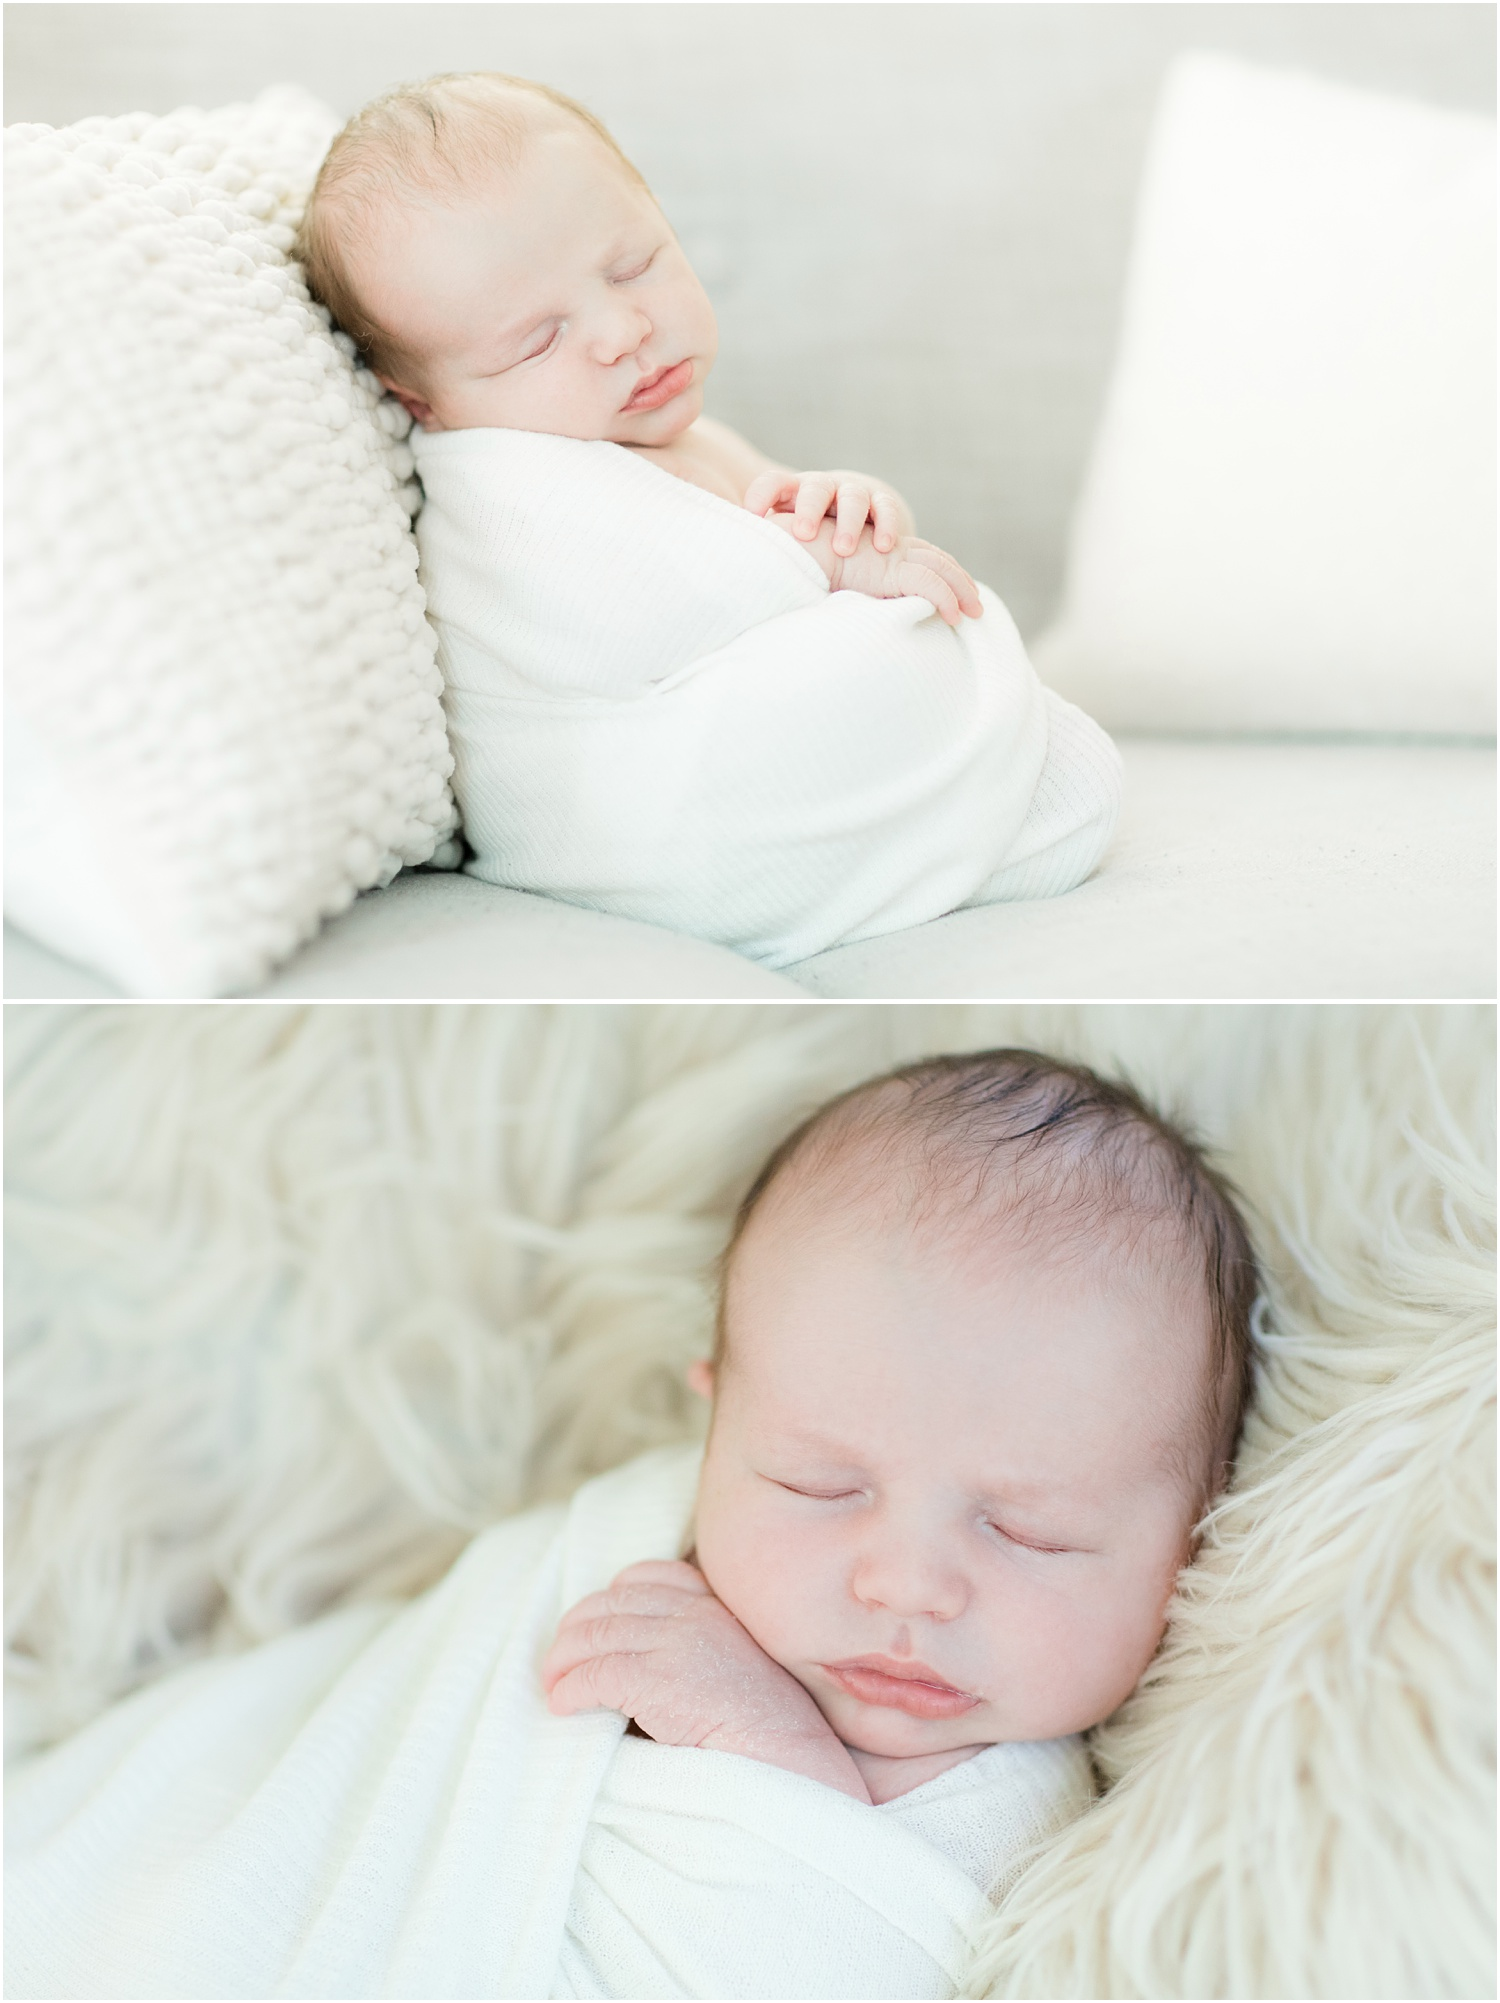 Simple and natural professional photos of newborn baby in New Jersey home.